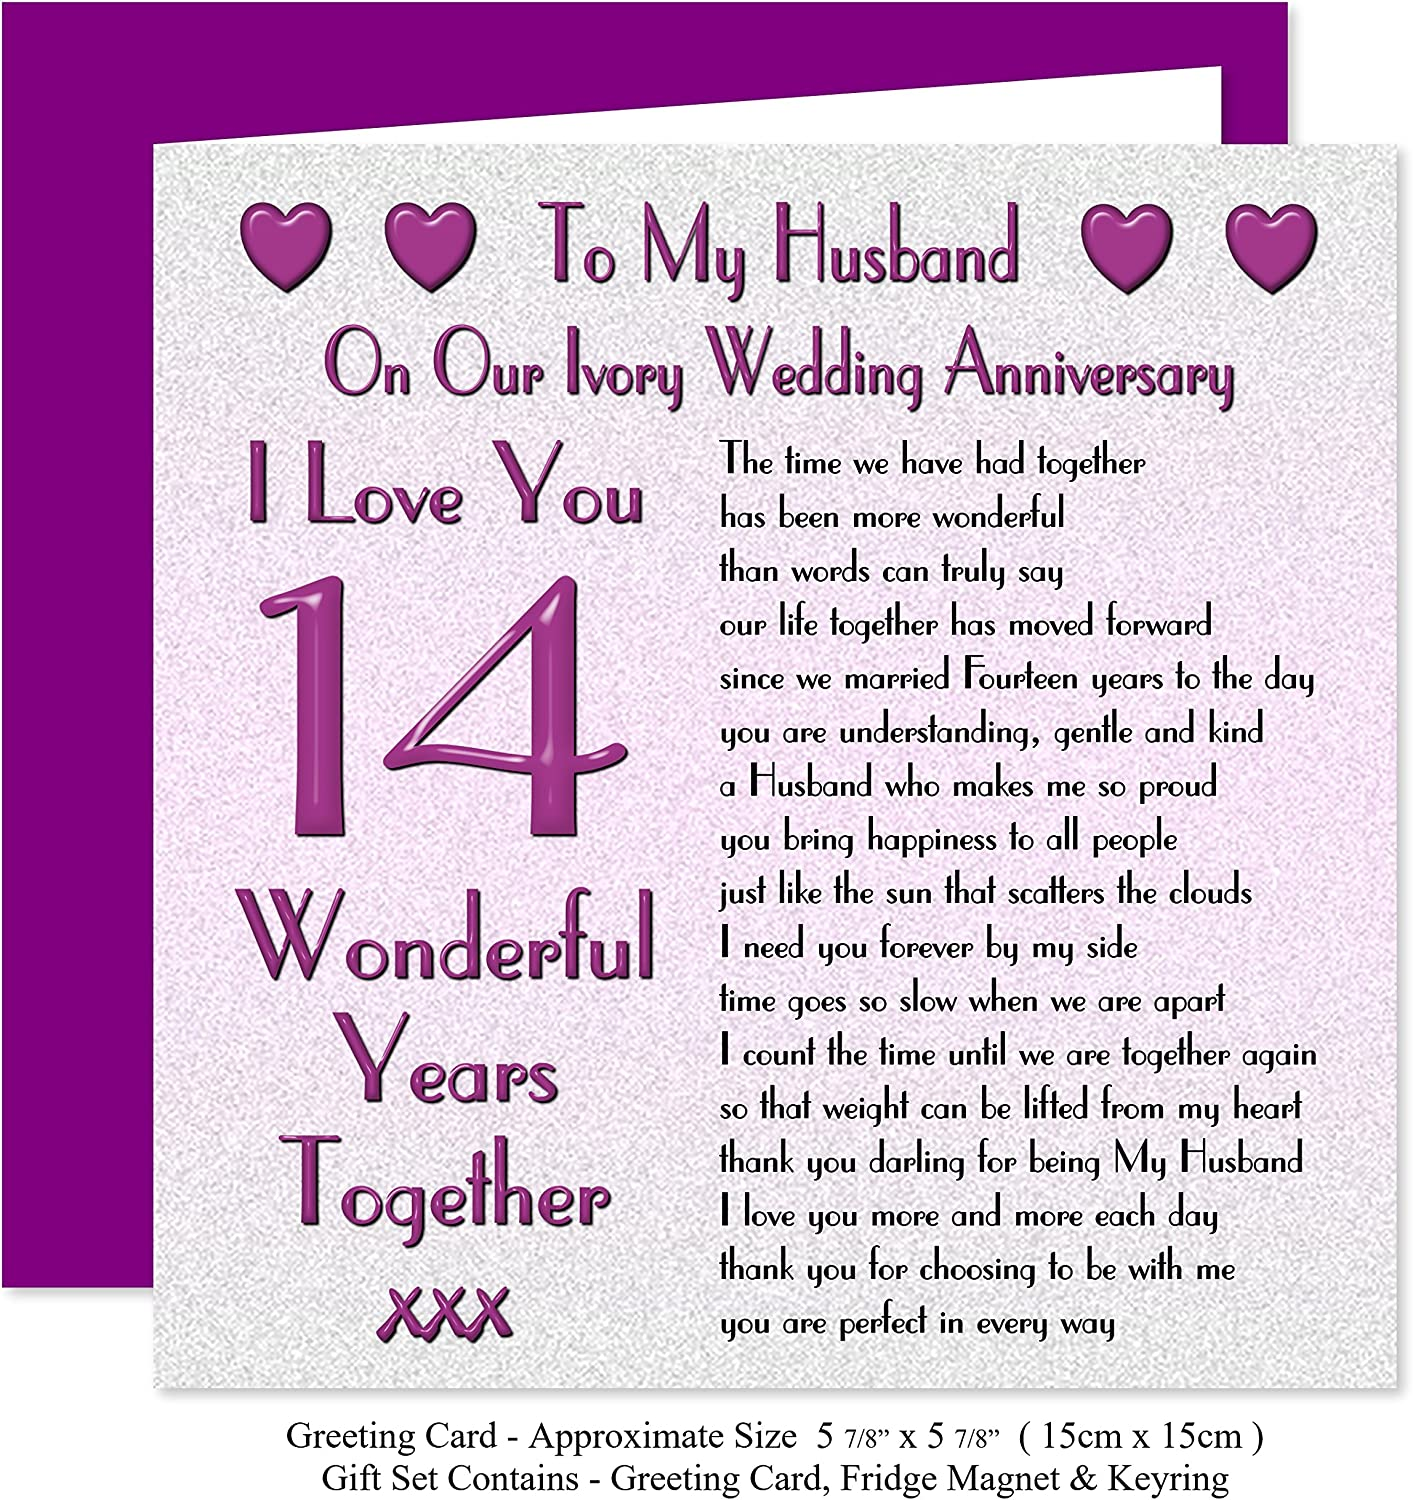 My Husband 14th Wedding Anniversary Gift Set Card Keyring Fridge Magnet Present On Our Ivory Anniversary 14 Years Sentimental Verse I Love You Amazon Co Uk Office Products